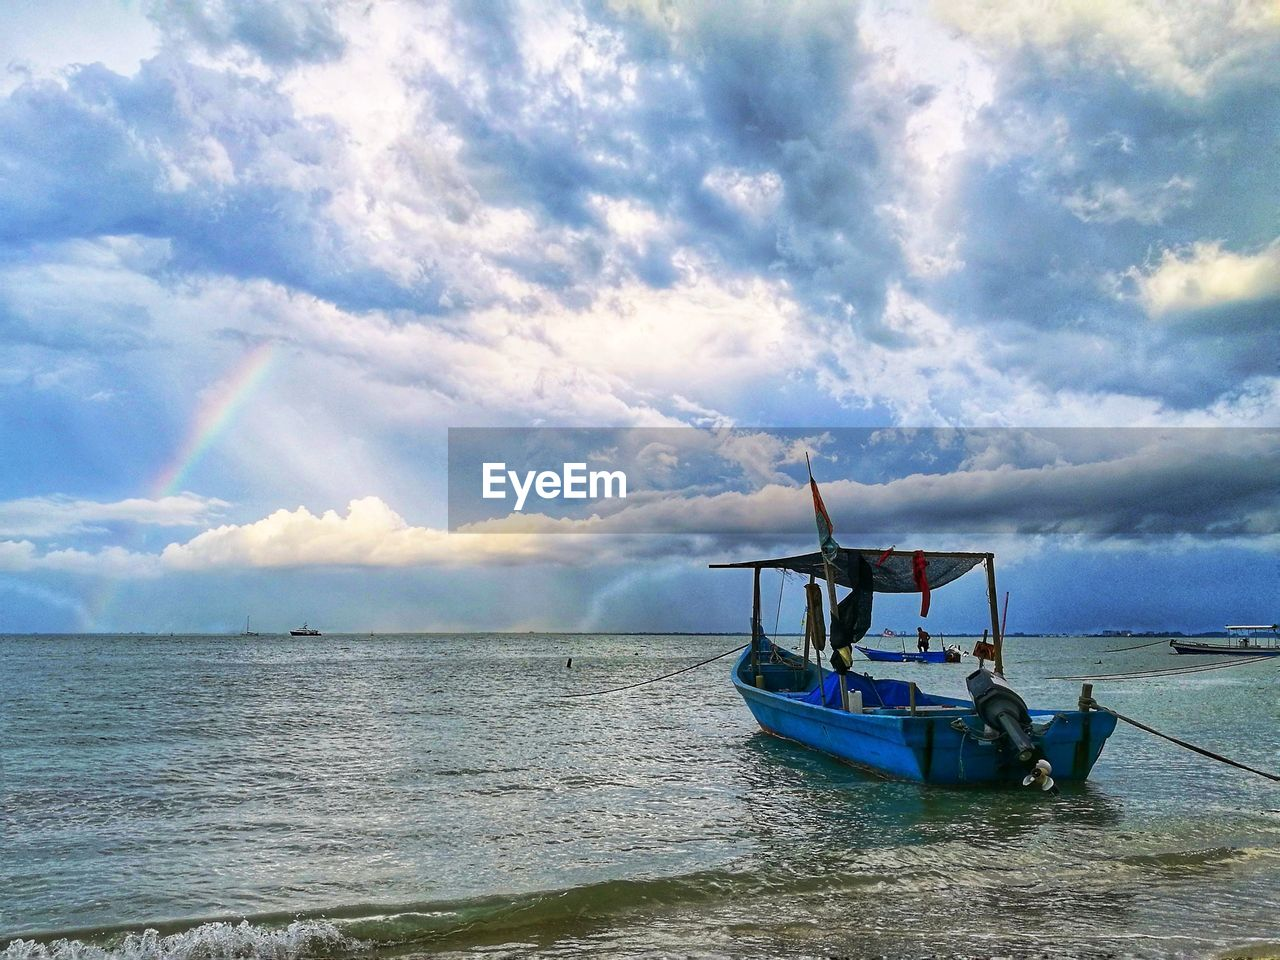 cloud - sky, sea, sky, nautical vessel, water, transportation, nature, day, horizon over water, scenics, mode of transport, beauty in nature, outdoors, real people, men, beach, one person, outrigger, people